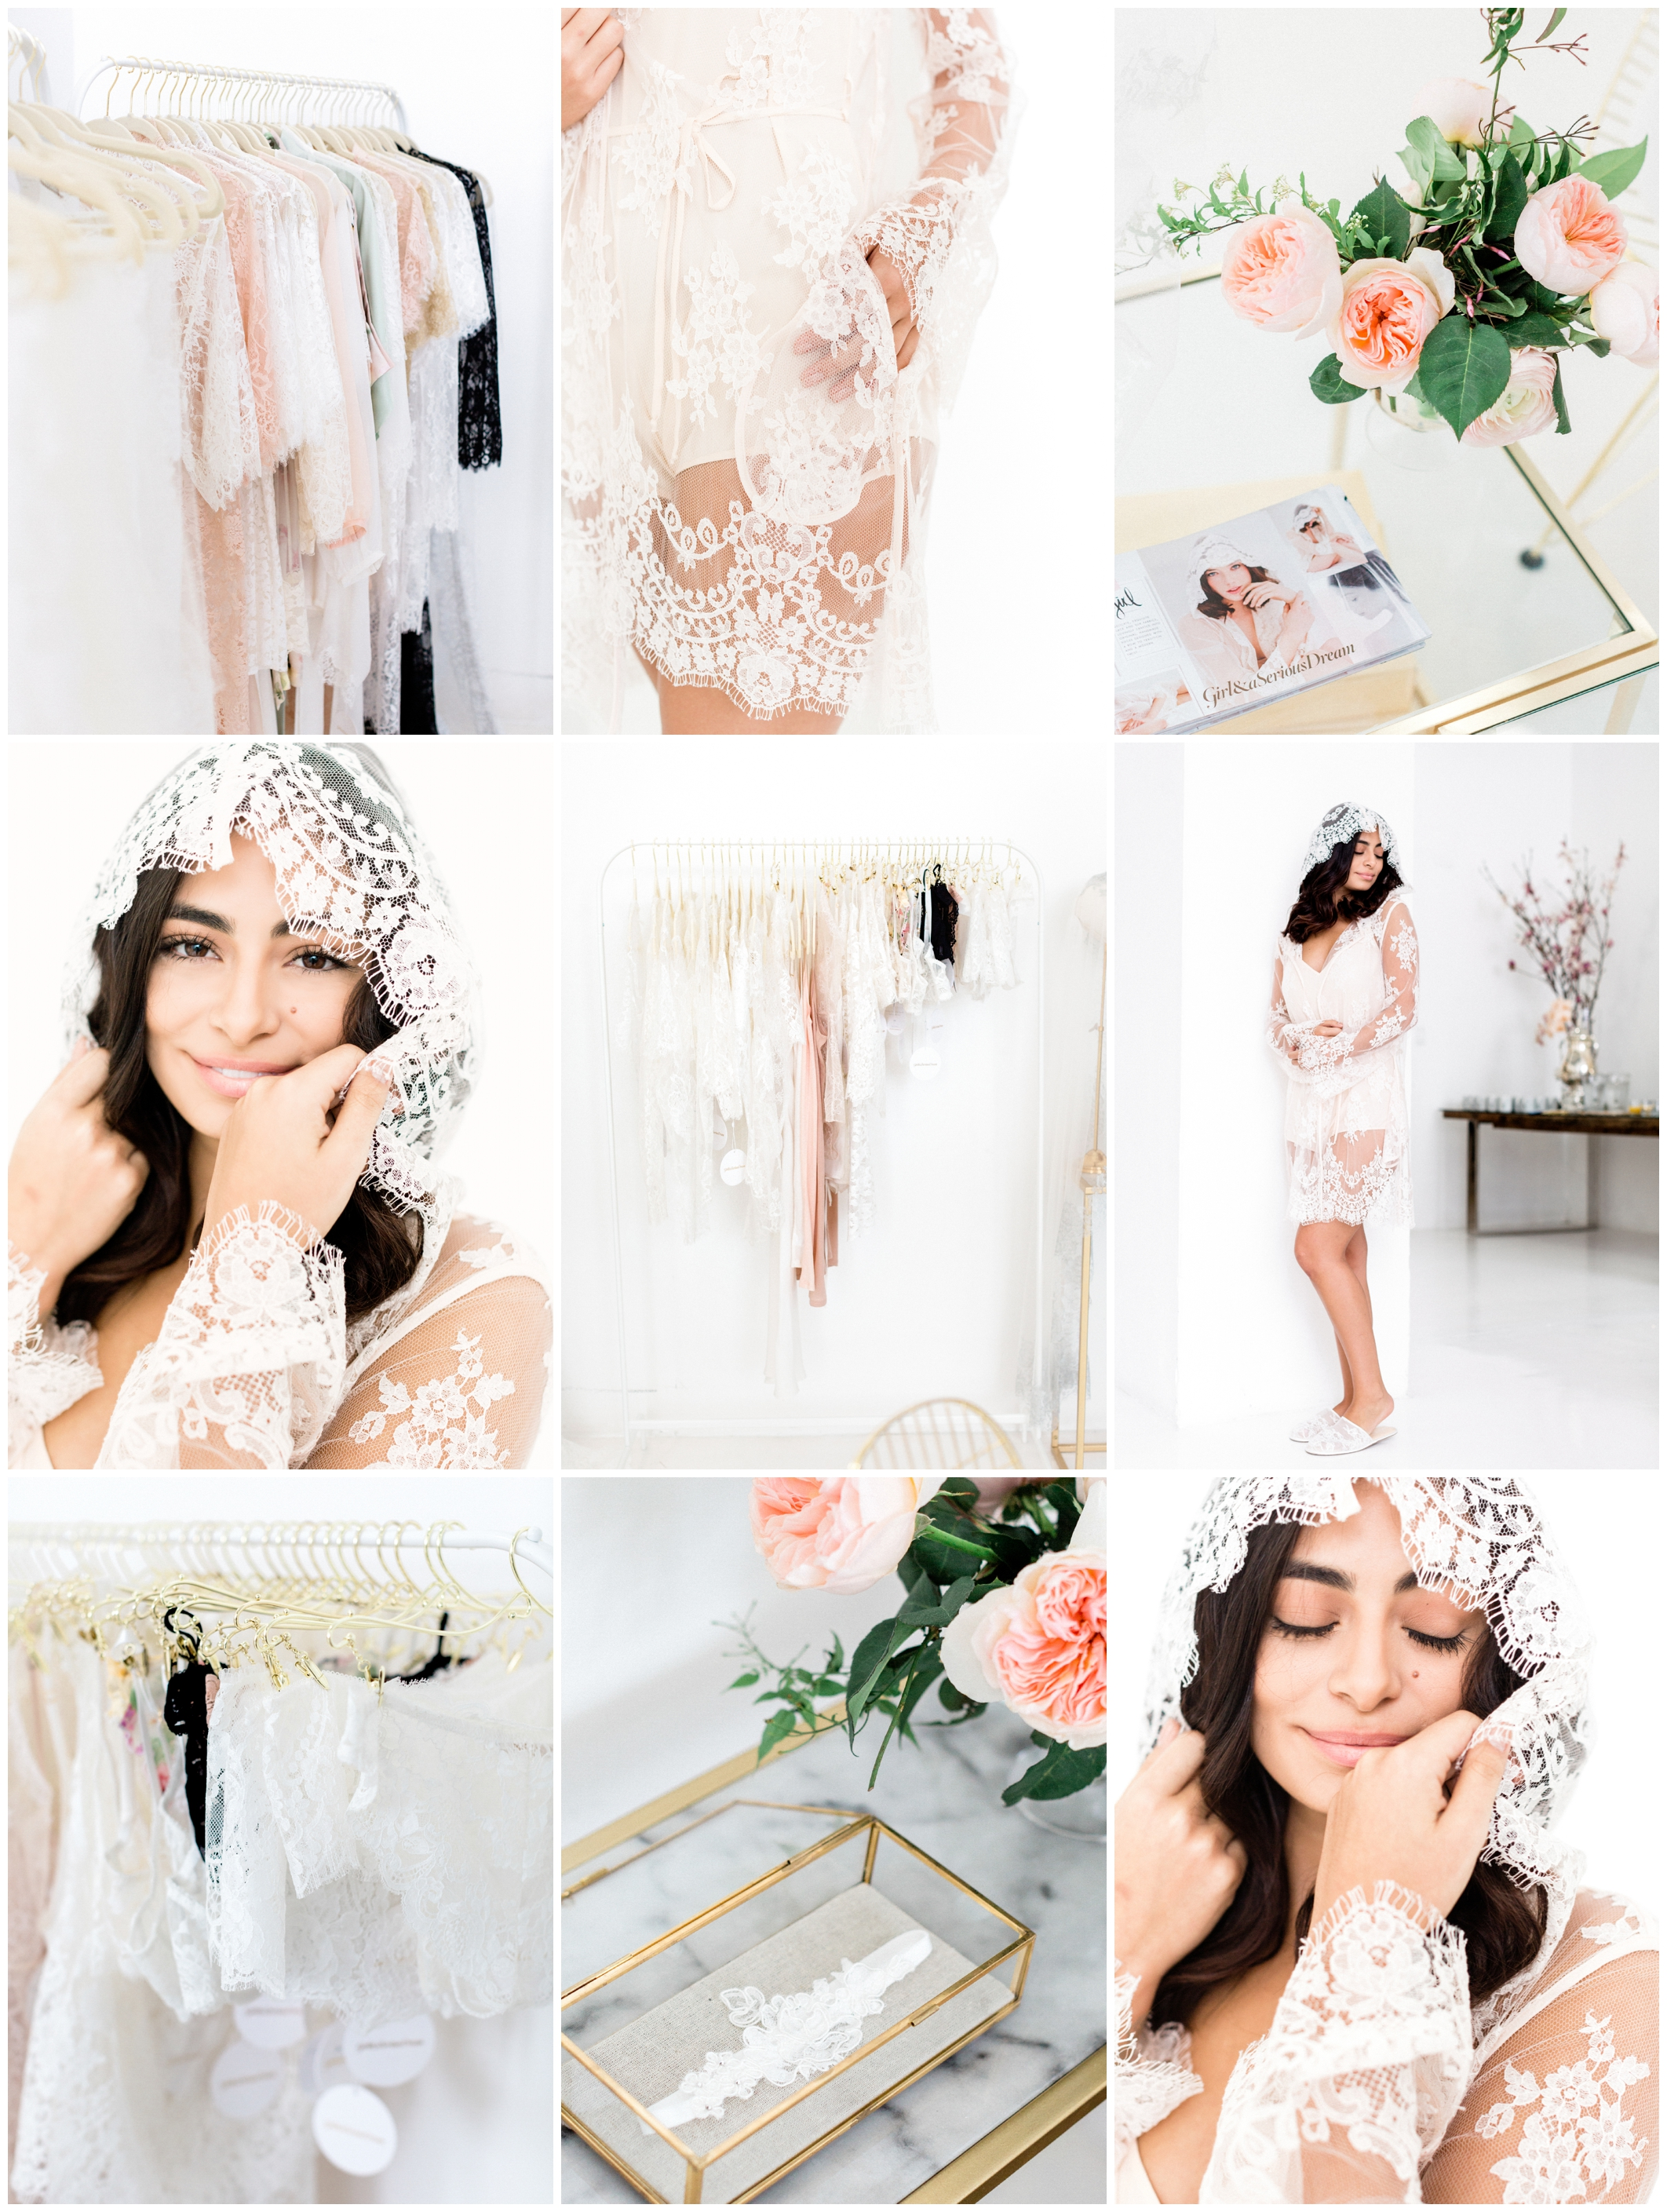 Girl&aSeriousDream at One Fine Day Bridal Market